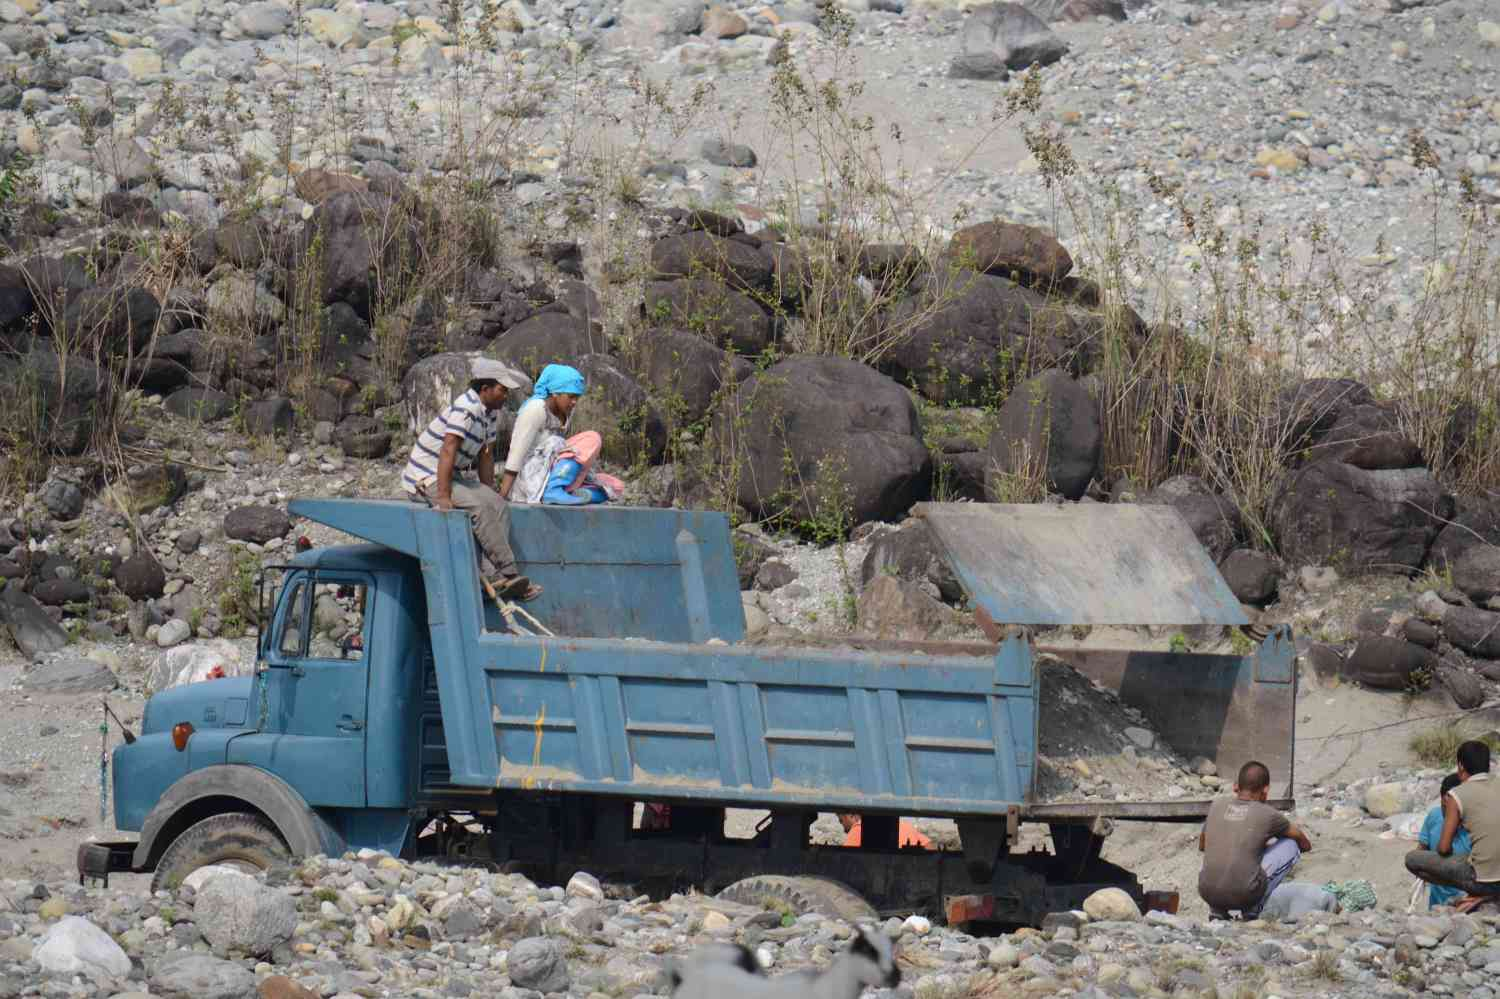 Highway construction workers take some time off. (Photo credit: Anupam Chakravartty).